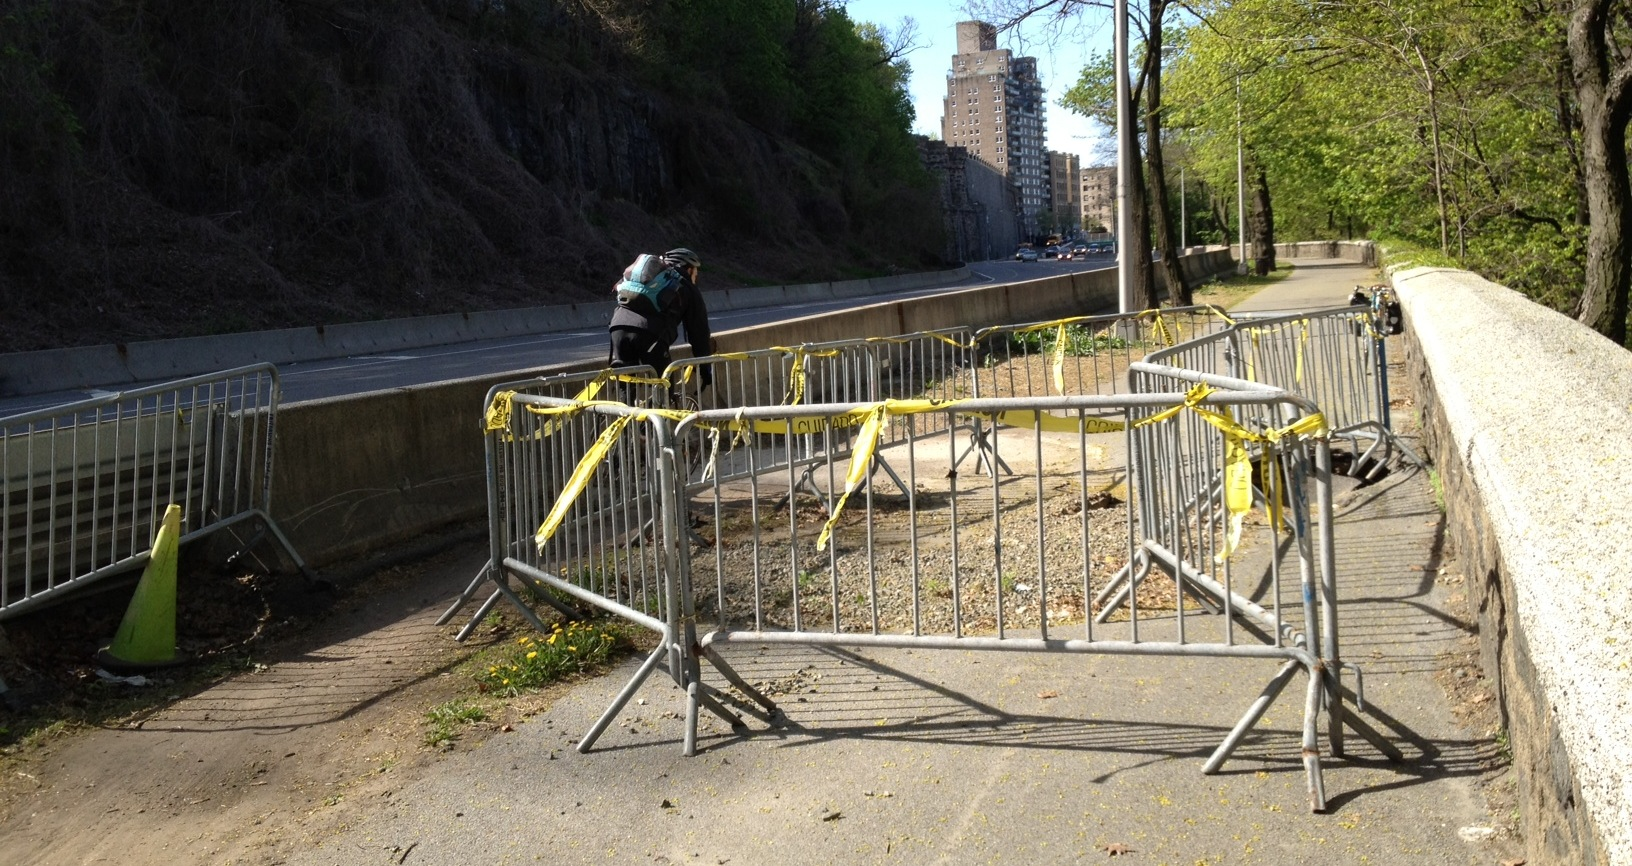 Hudson River Greenway users north of 181st Street can get by on the grass shoulder, but the sinkhole is expanding.